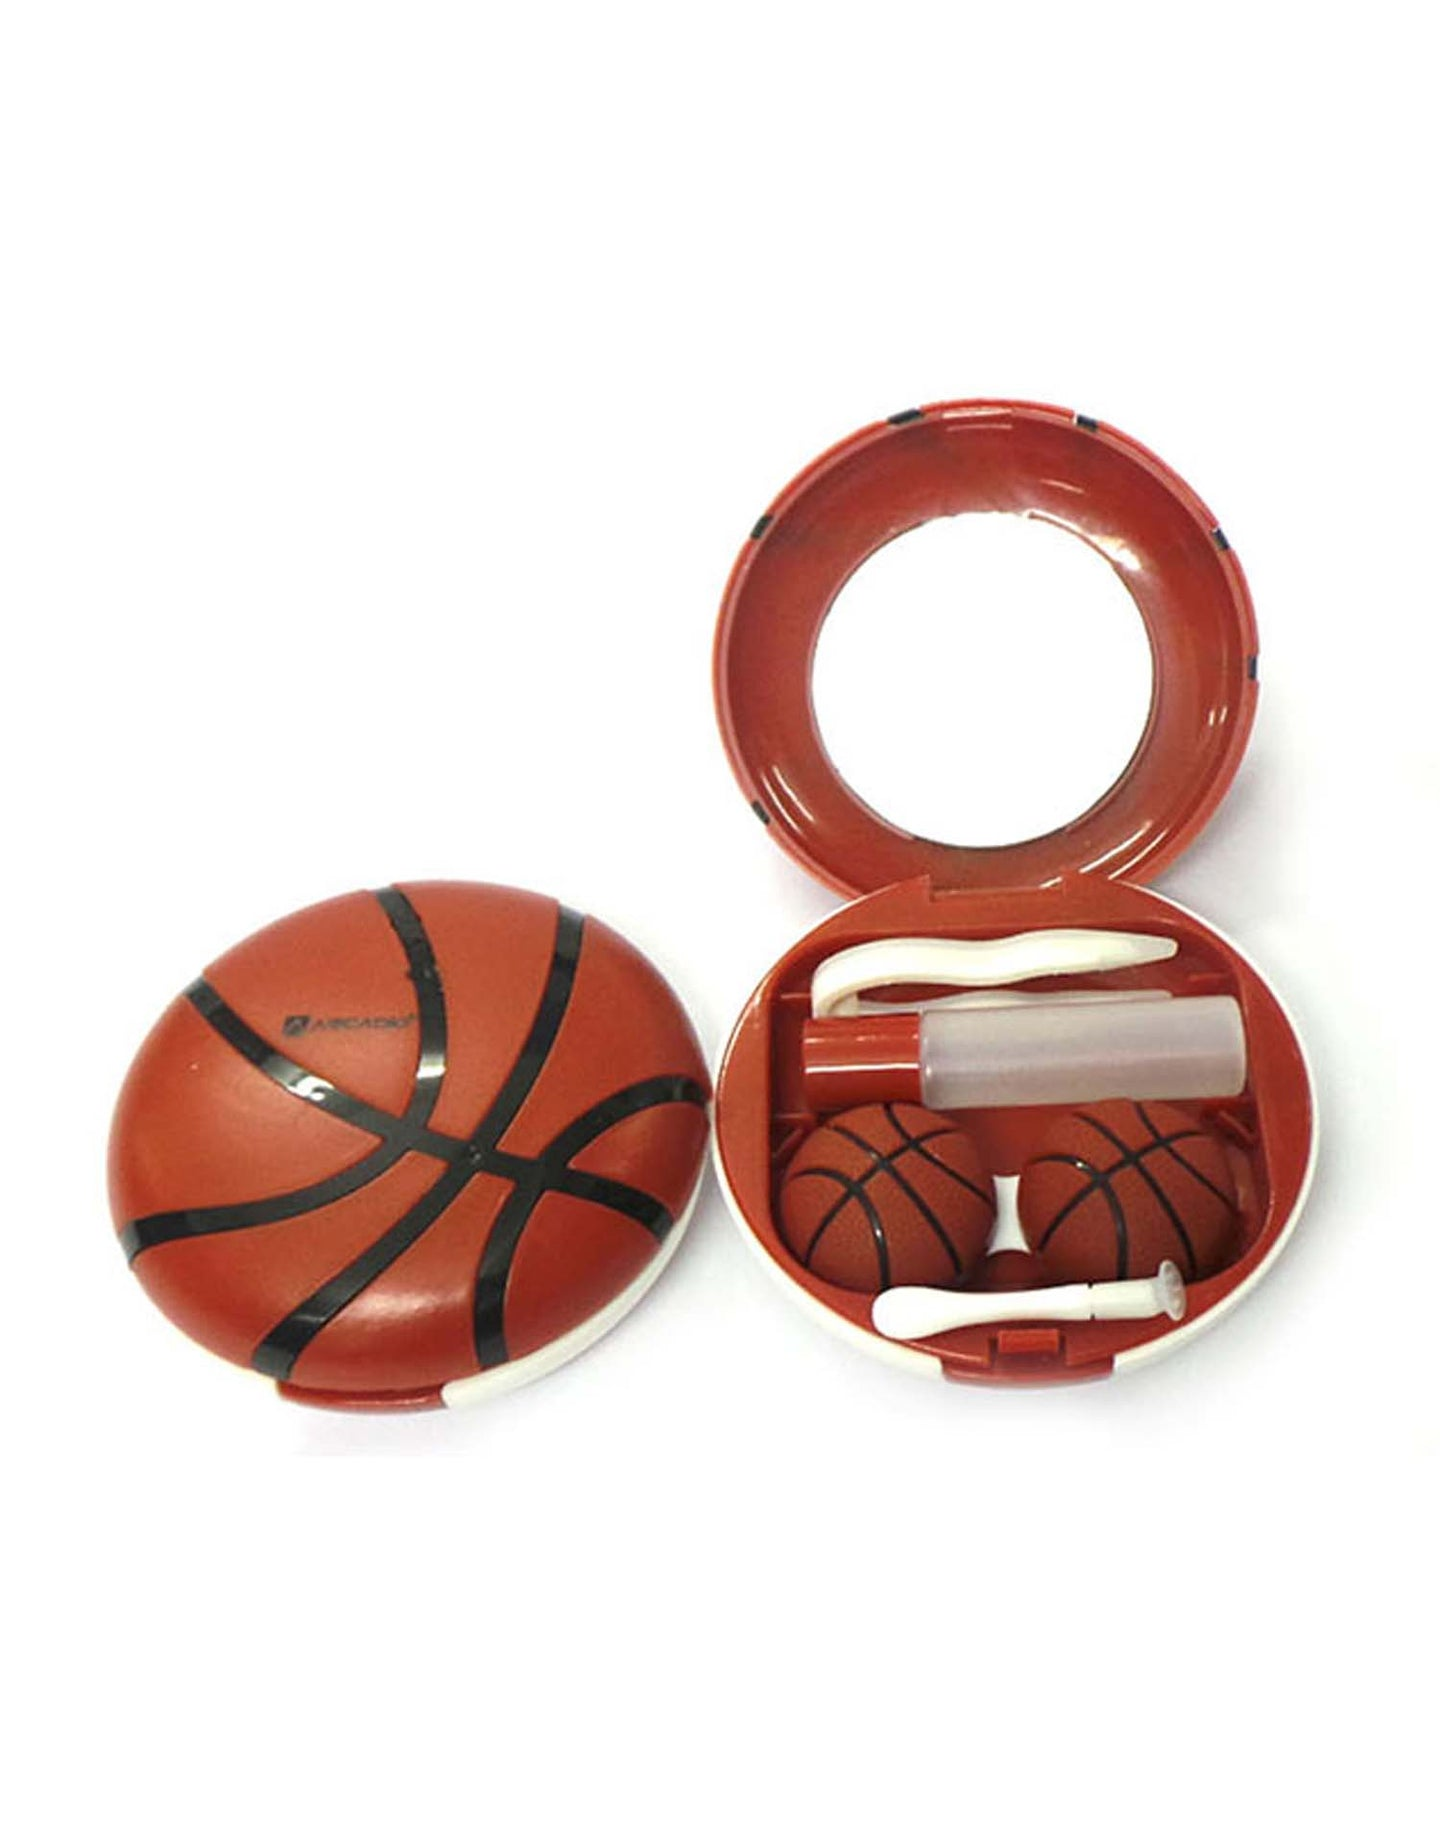 SPORT - Designer Contact Lens Cases - A8060BR - ARCADIO LIFESTYLE